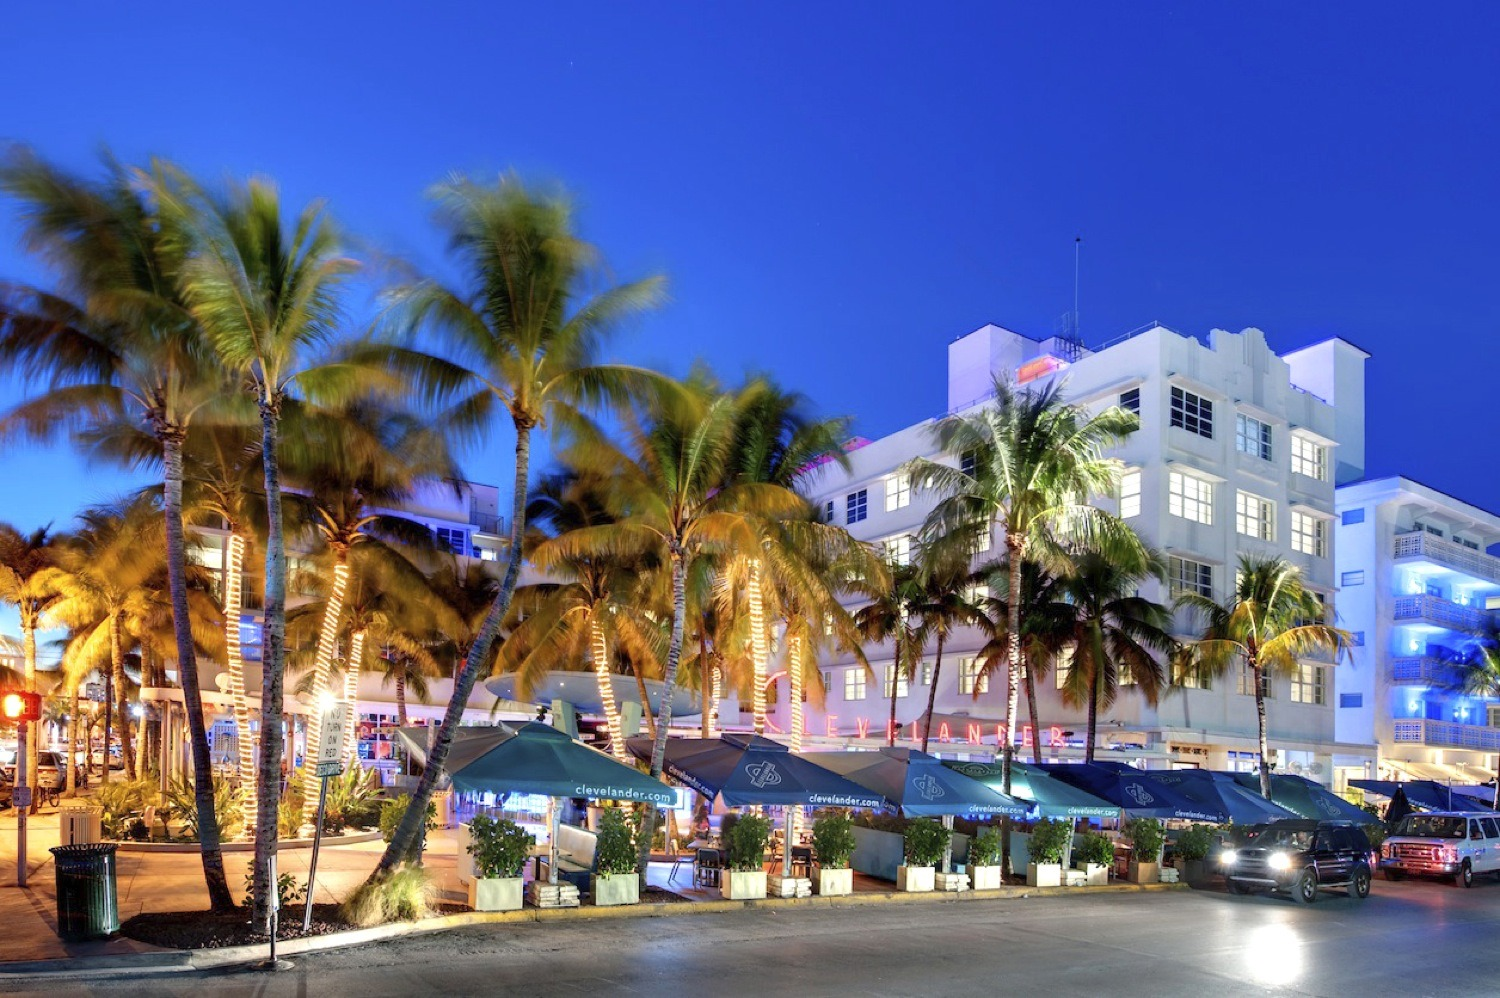 The Clevelander, Bars and lounges, Miami